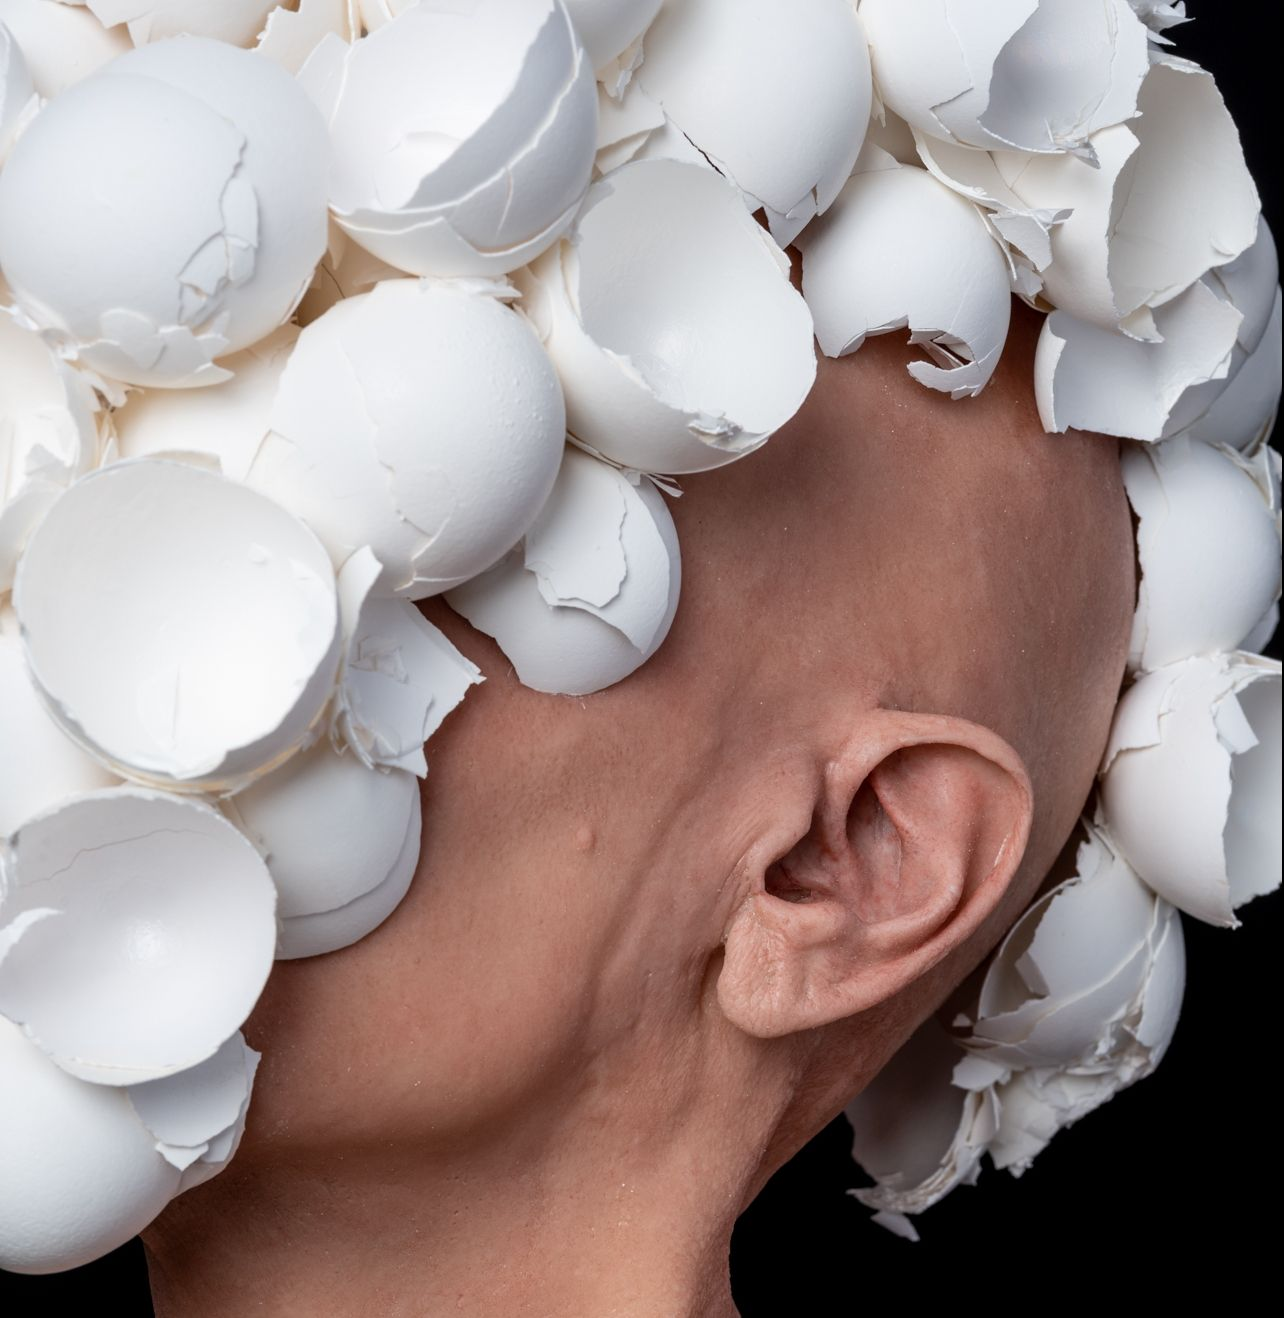 J.J. McCracken, The Feeding, 2020, painted platinum silicone lifecast, eggshells, ceramic, 22 x 16 x 12 inches.